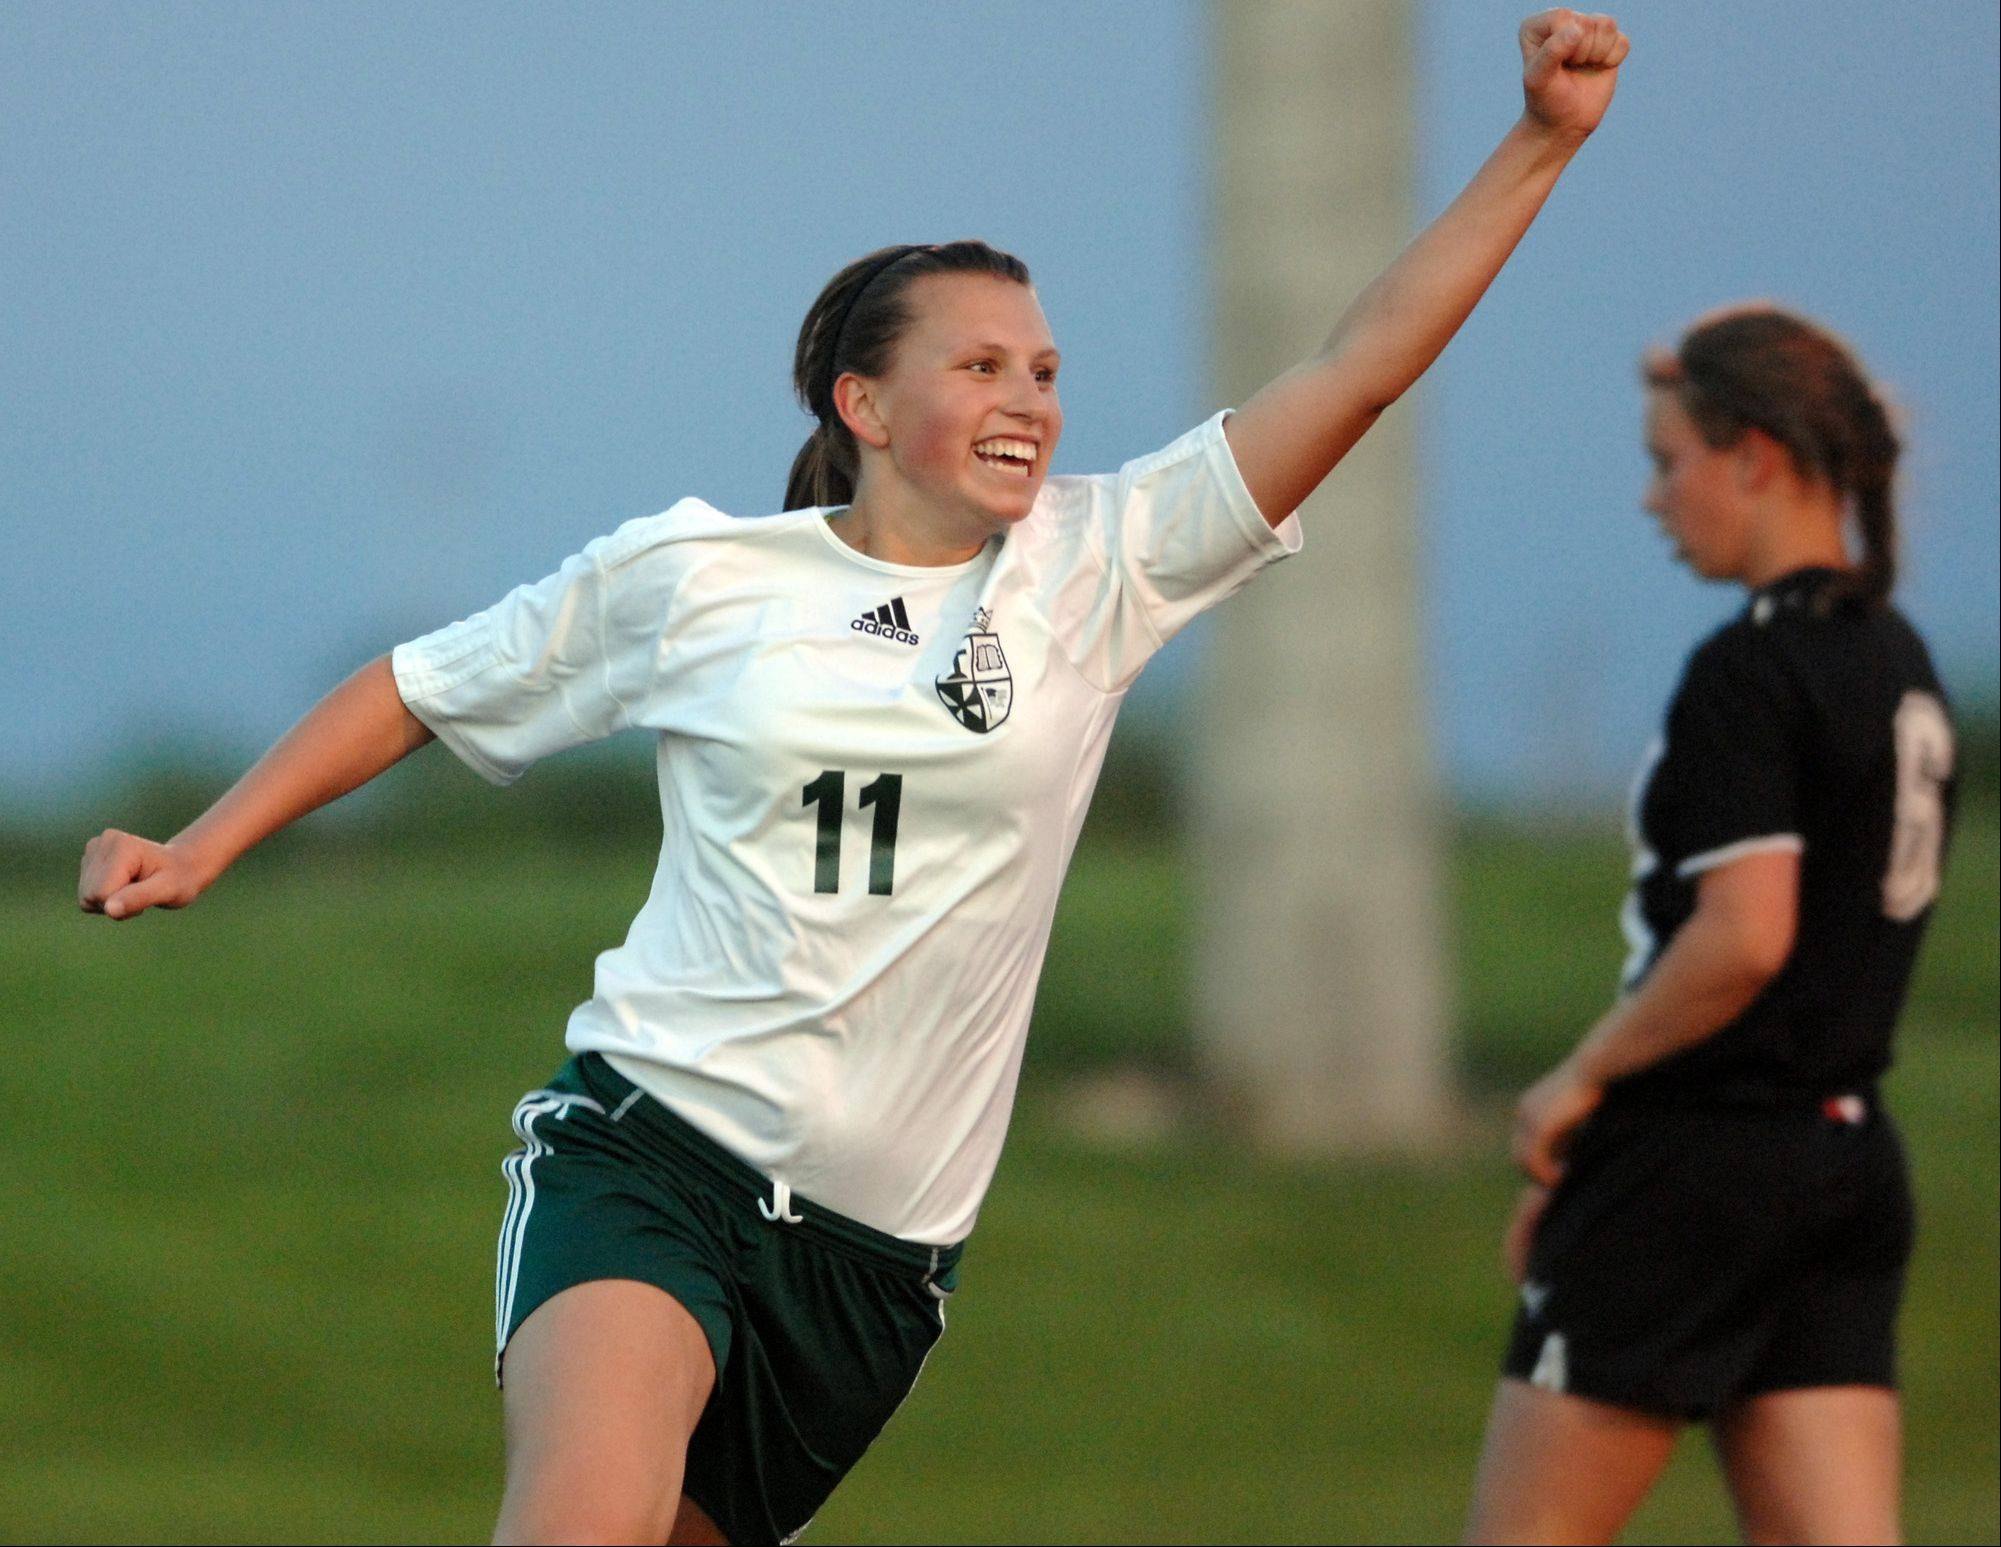 St. Edward's Allison Kruk celebrates the first of two first-half goals against Stillman Valley last season in a Class 1A sectional semifinal game in Harvard. Kruk set a program record for goals in a season with 19 last season.